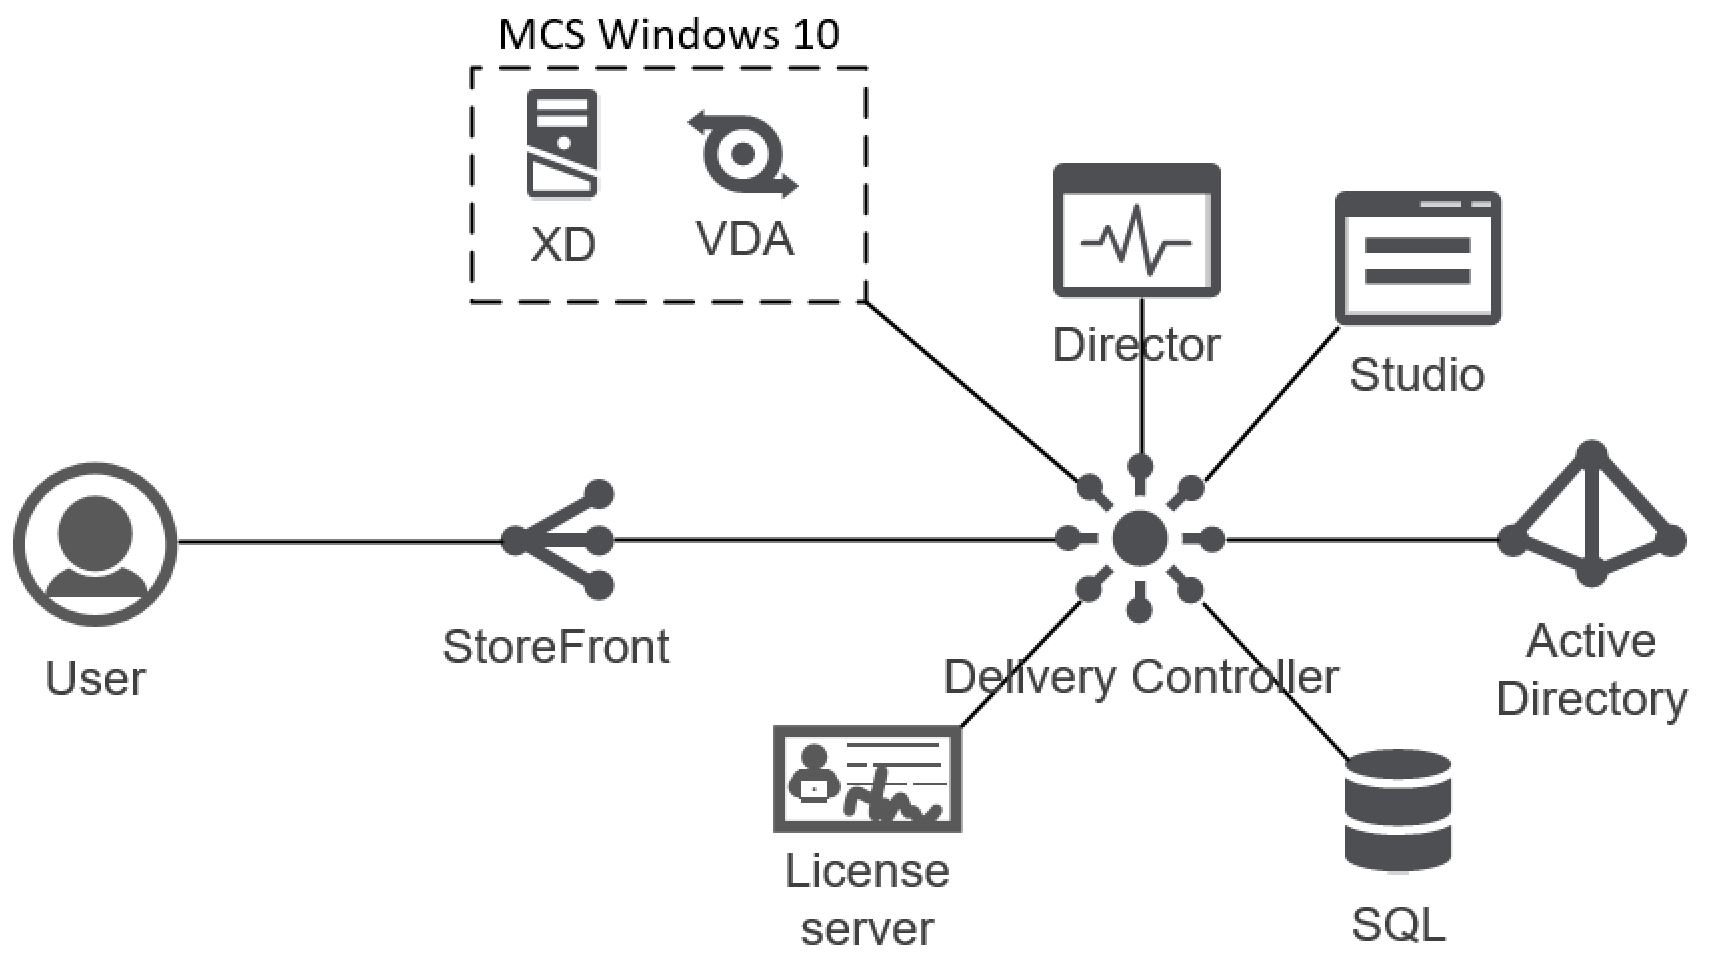 Visio MCS Citrix 7.13